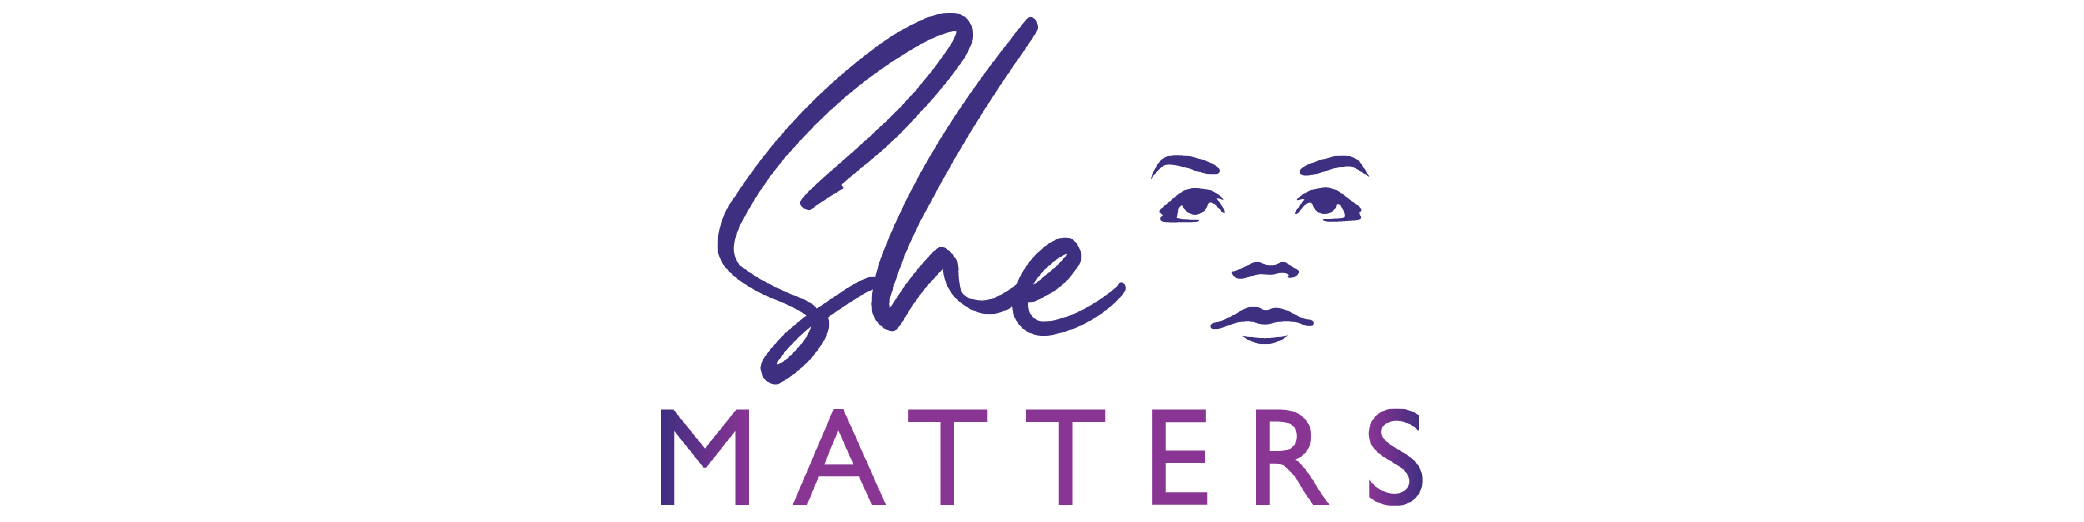 She Matters is a social enterprise recruitment agency with a mission to empower female newcomers to enter the labour market. Through their gender-specific programming, She Matters offers the support they need to build their social and economic capital, boost their self-confidence and become leaders in their homes, businesses and communities. -